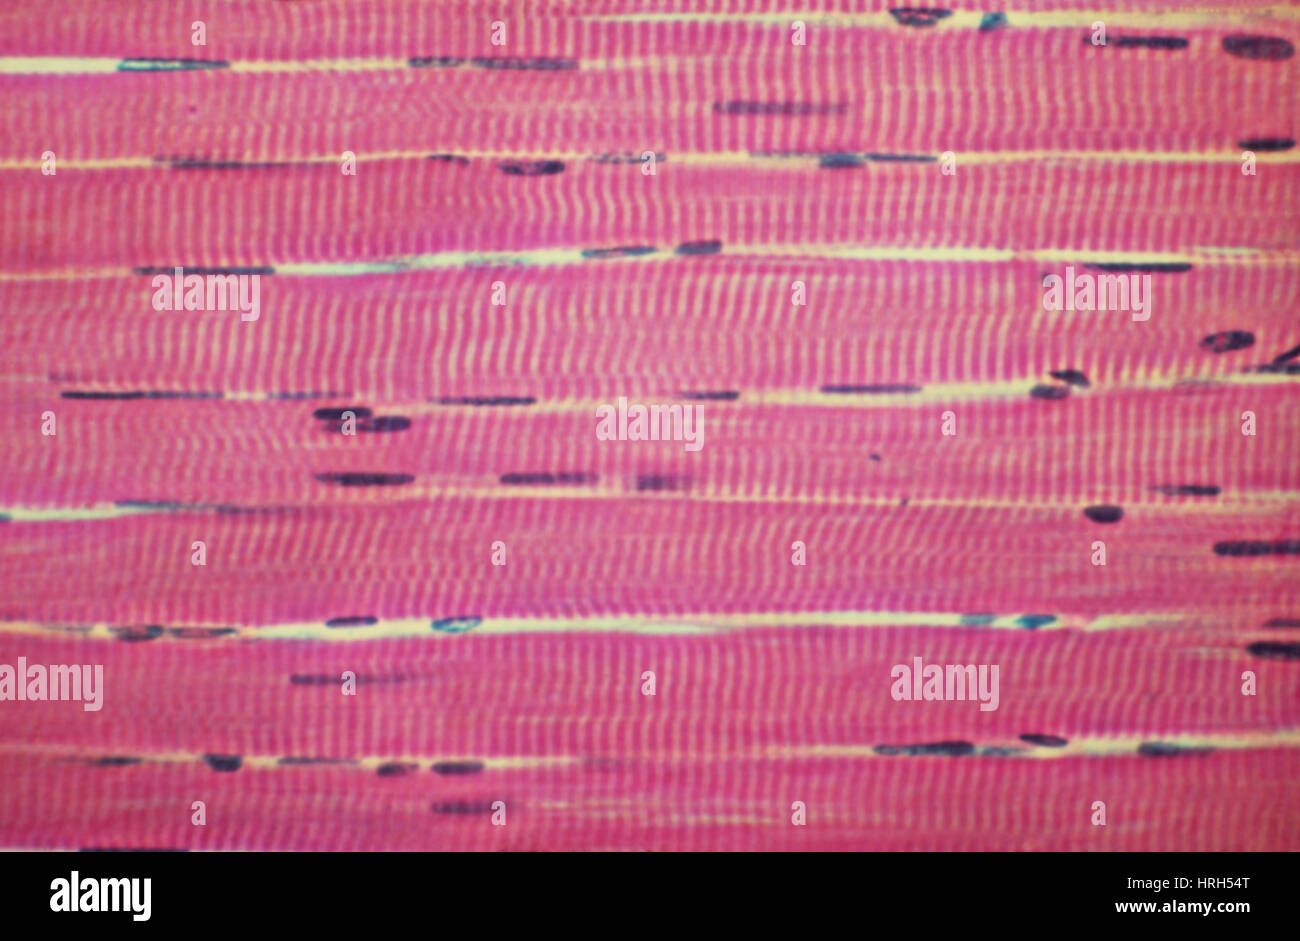 Skeletal Muscle Tissue Longitudinal Section Stock Photos Skeletal